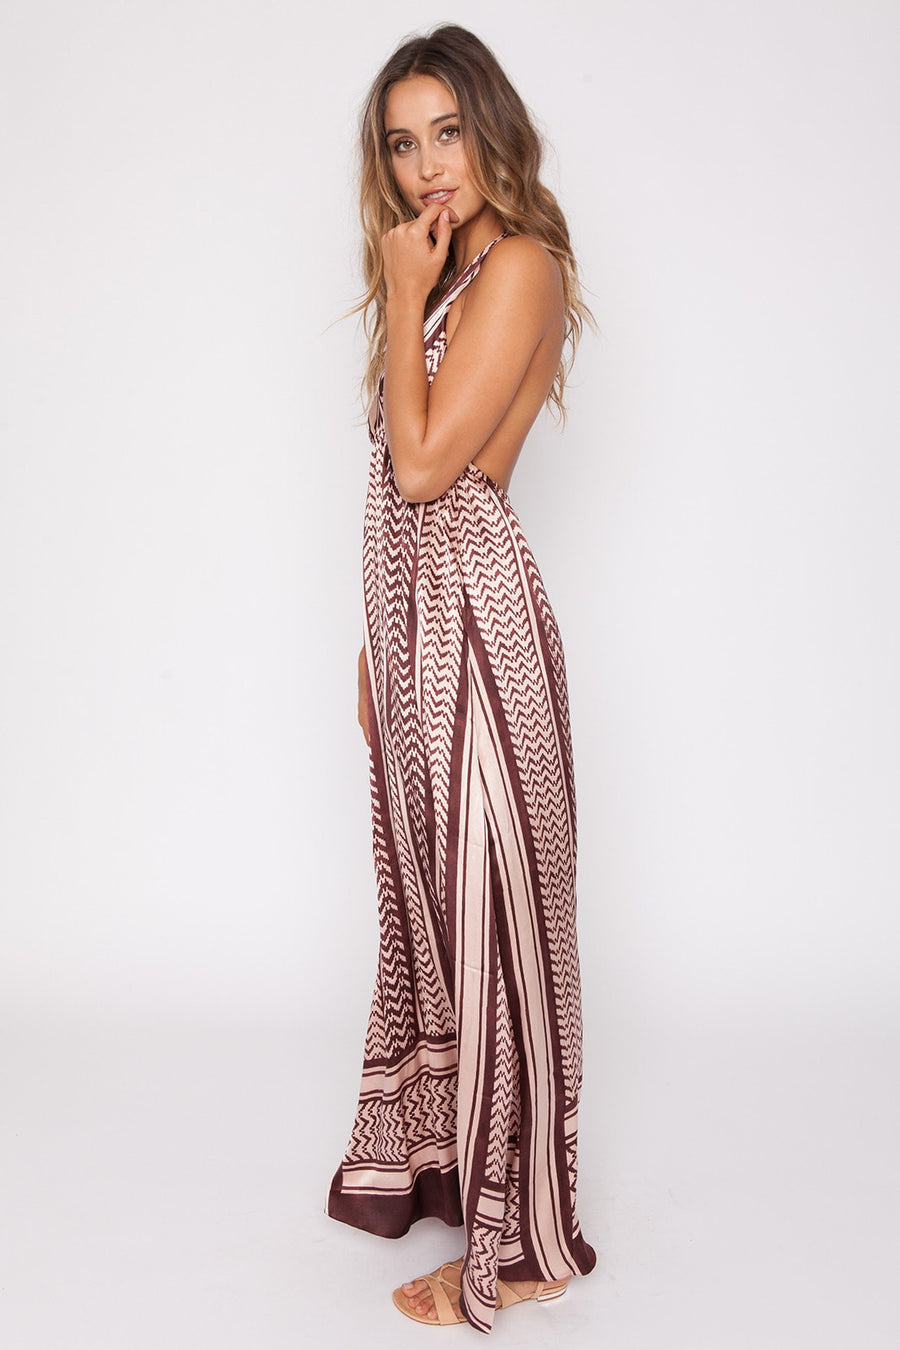 Lotta || Saladin Halter maxi dress in pink/brown